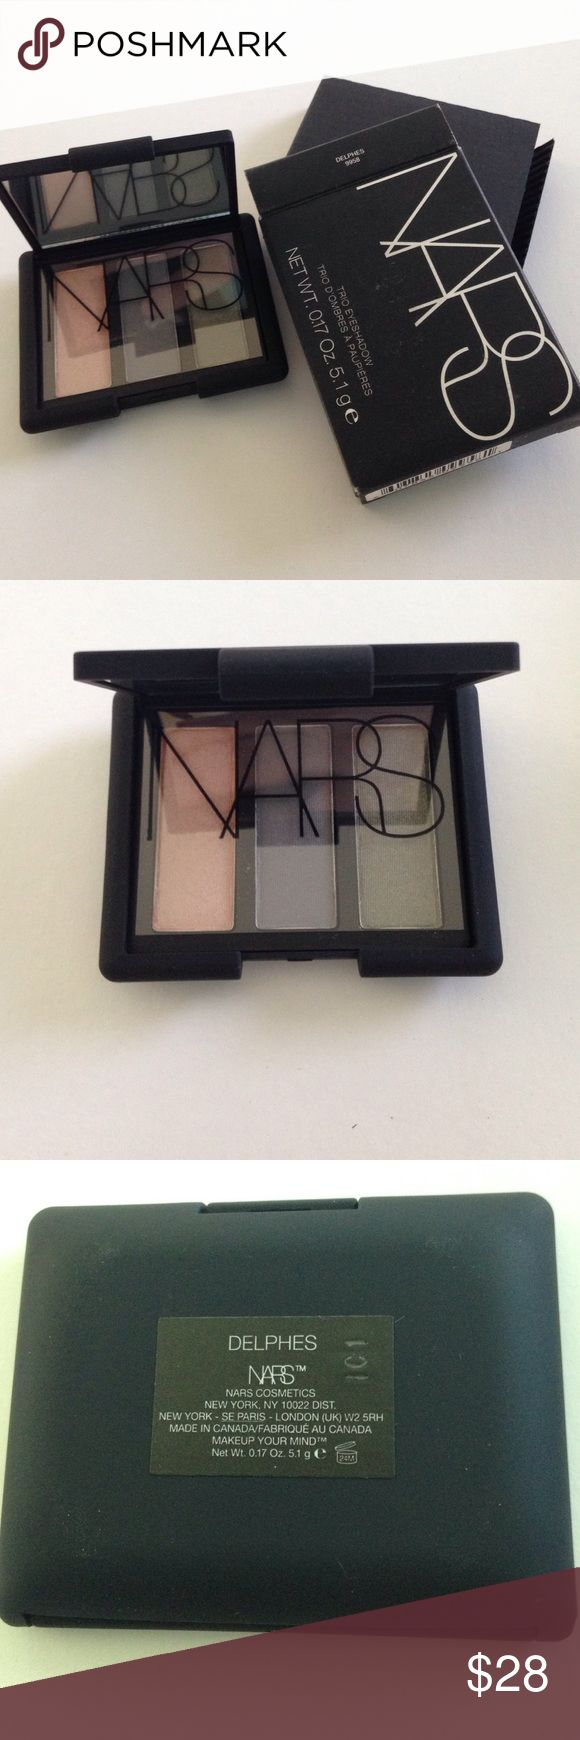 Brand New Authentic NARS Eyeshadow Trio Delphes Brand New Authentic NARS Eyeshadow Duo Delphes in original packaging. Never swatched. No trades. NARS Makeup Eyeshadow